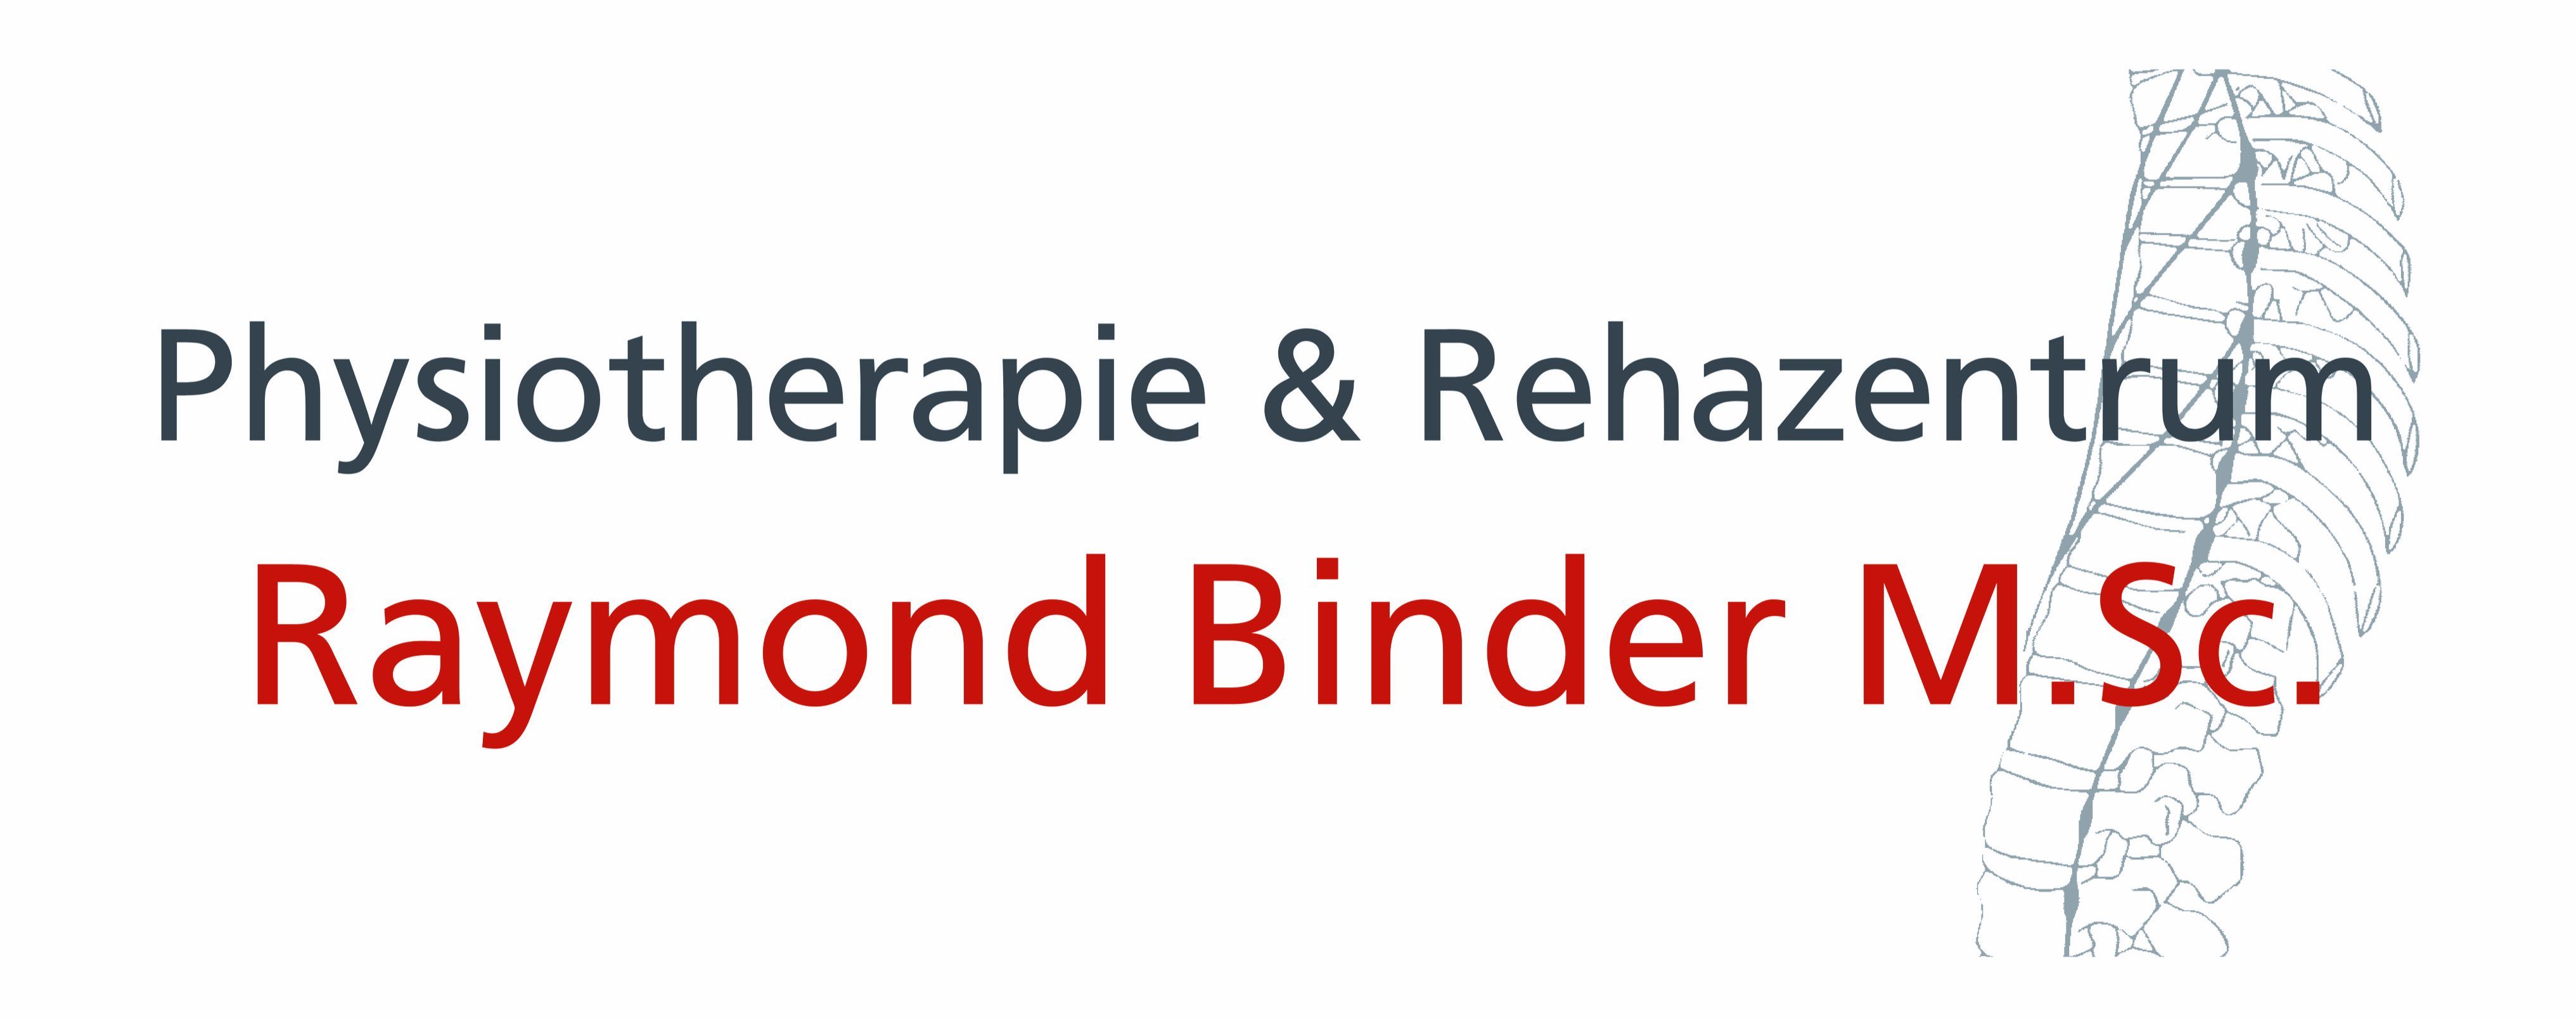 Physiotherapie & Rehazentrum Raymond Binder M.Sc.